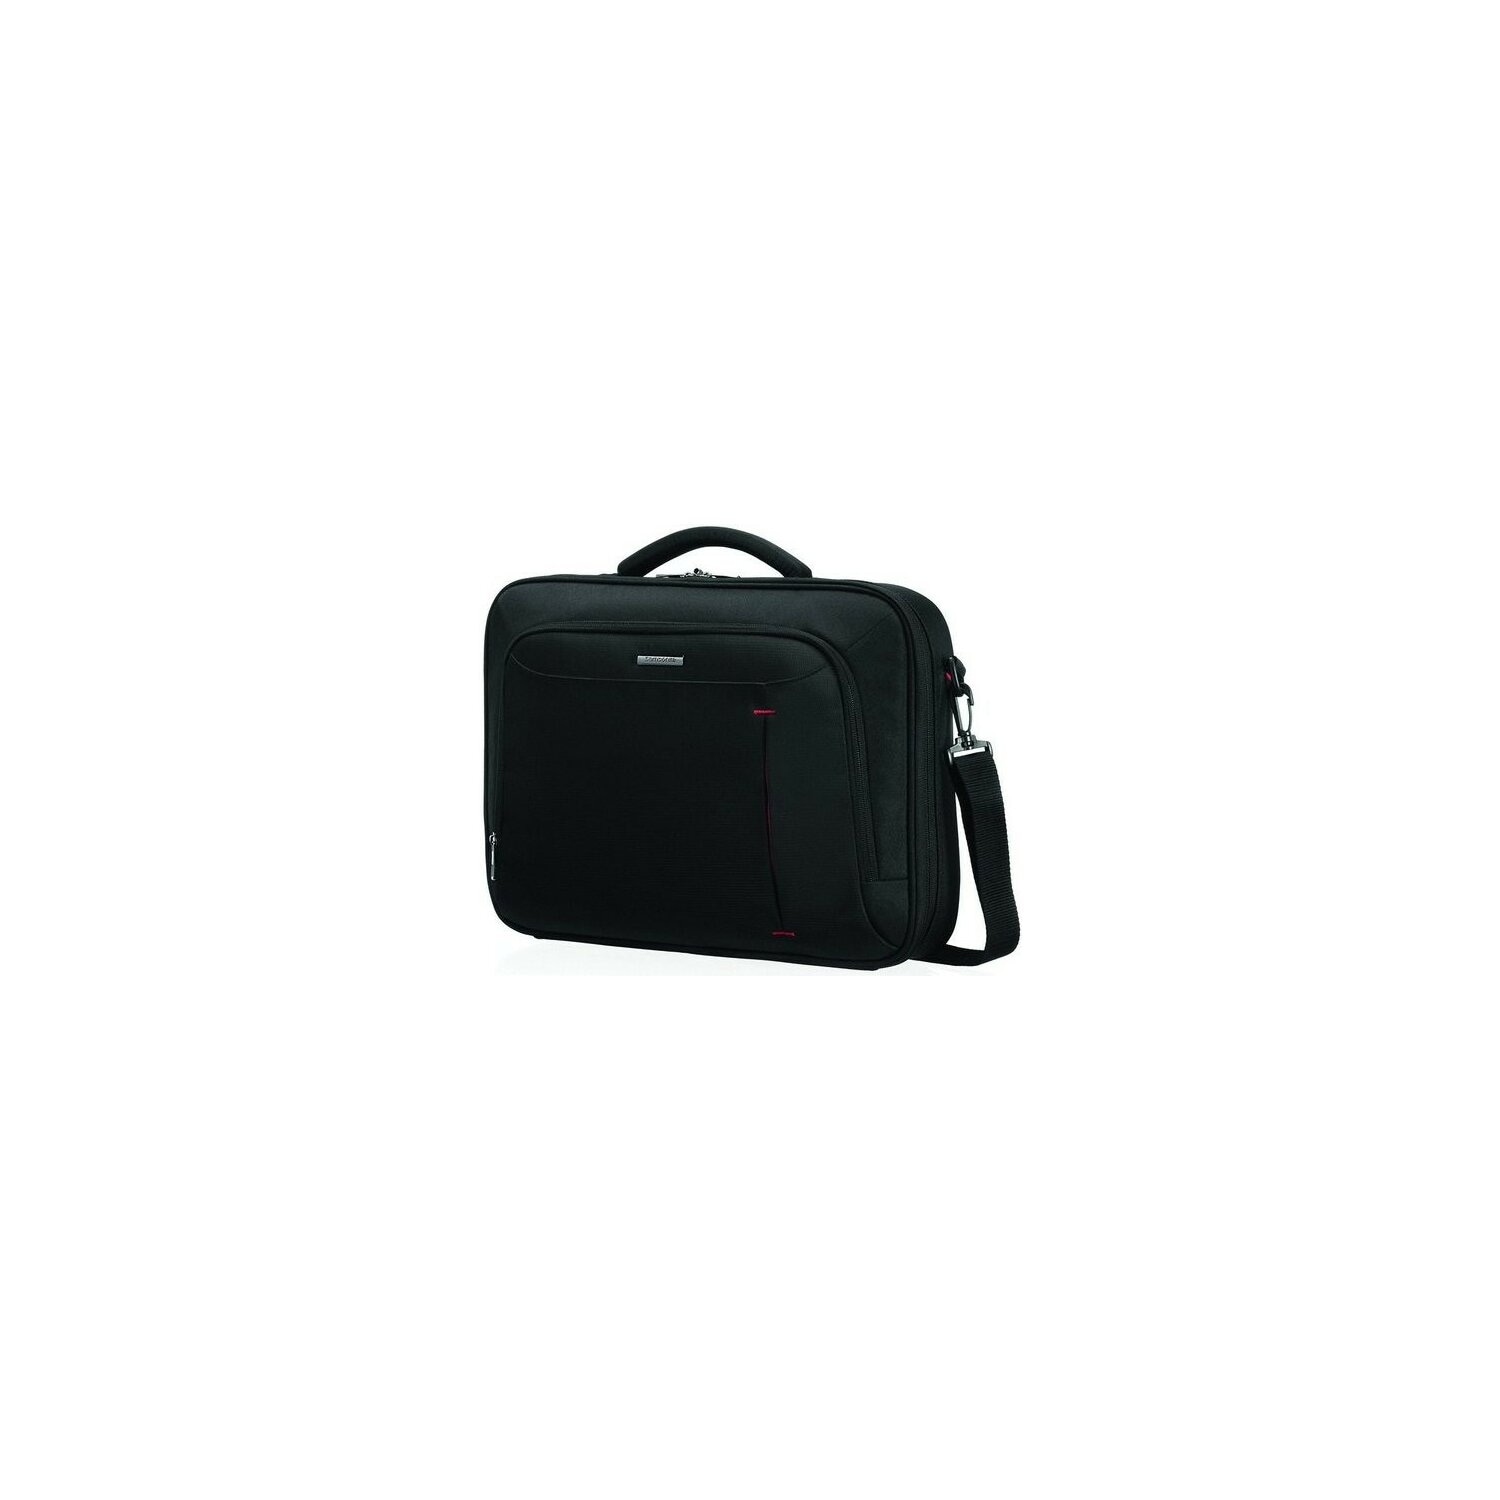 Torba SAMSONITE Office Case 16 cali